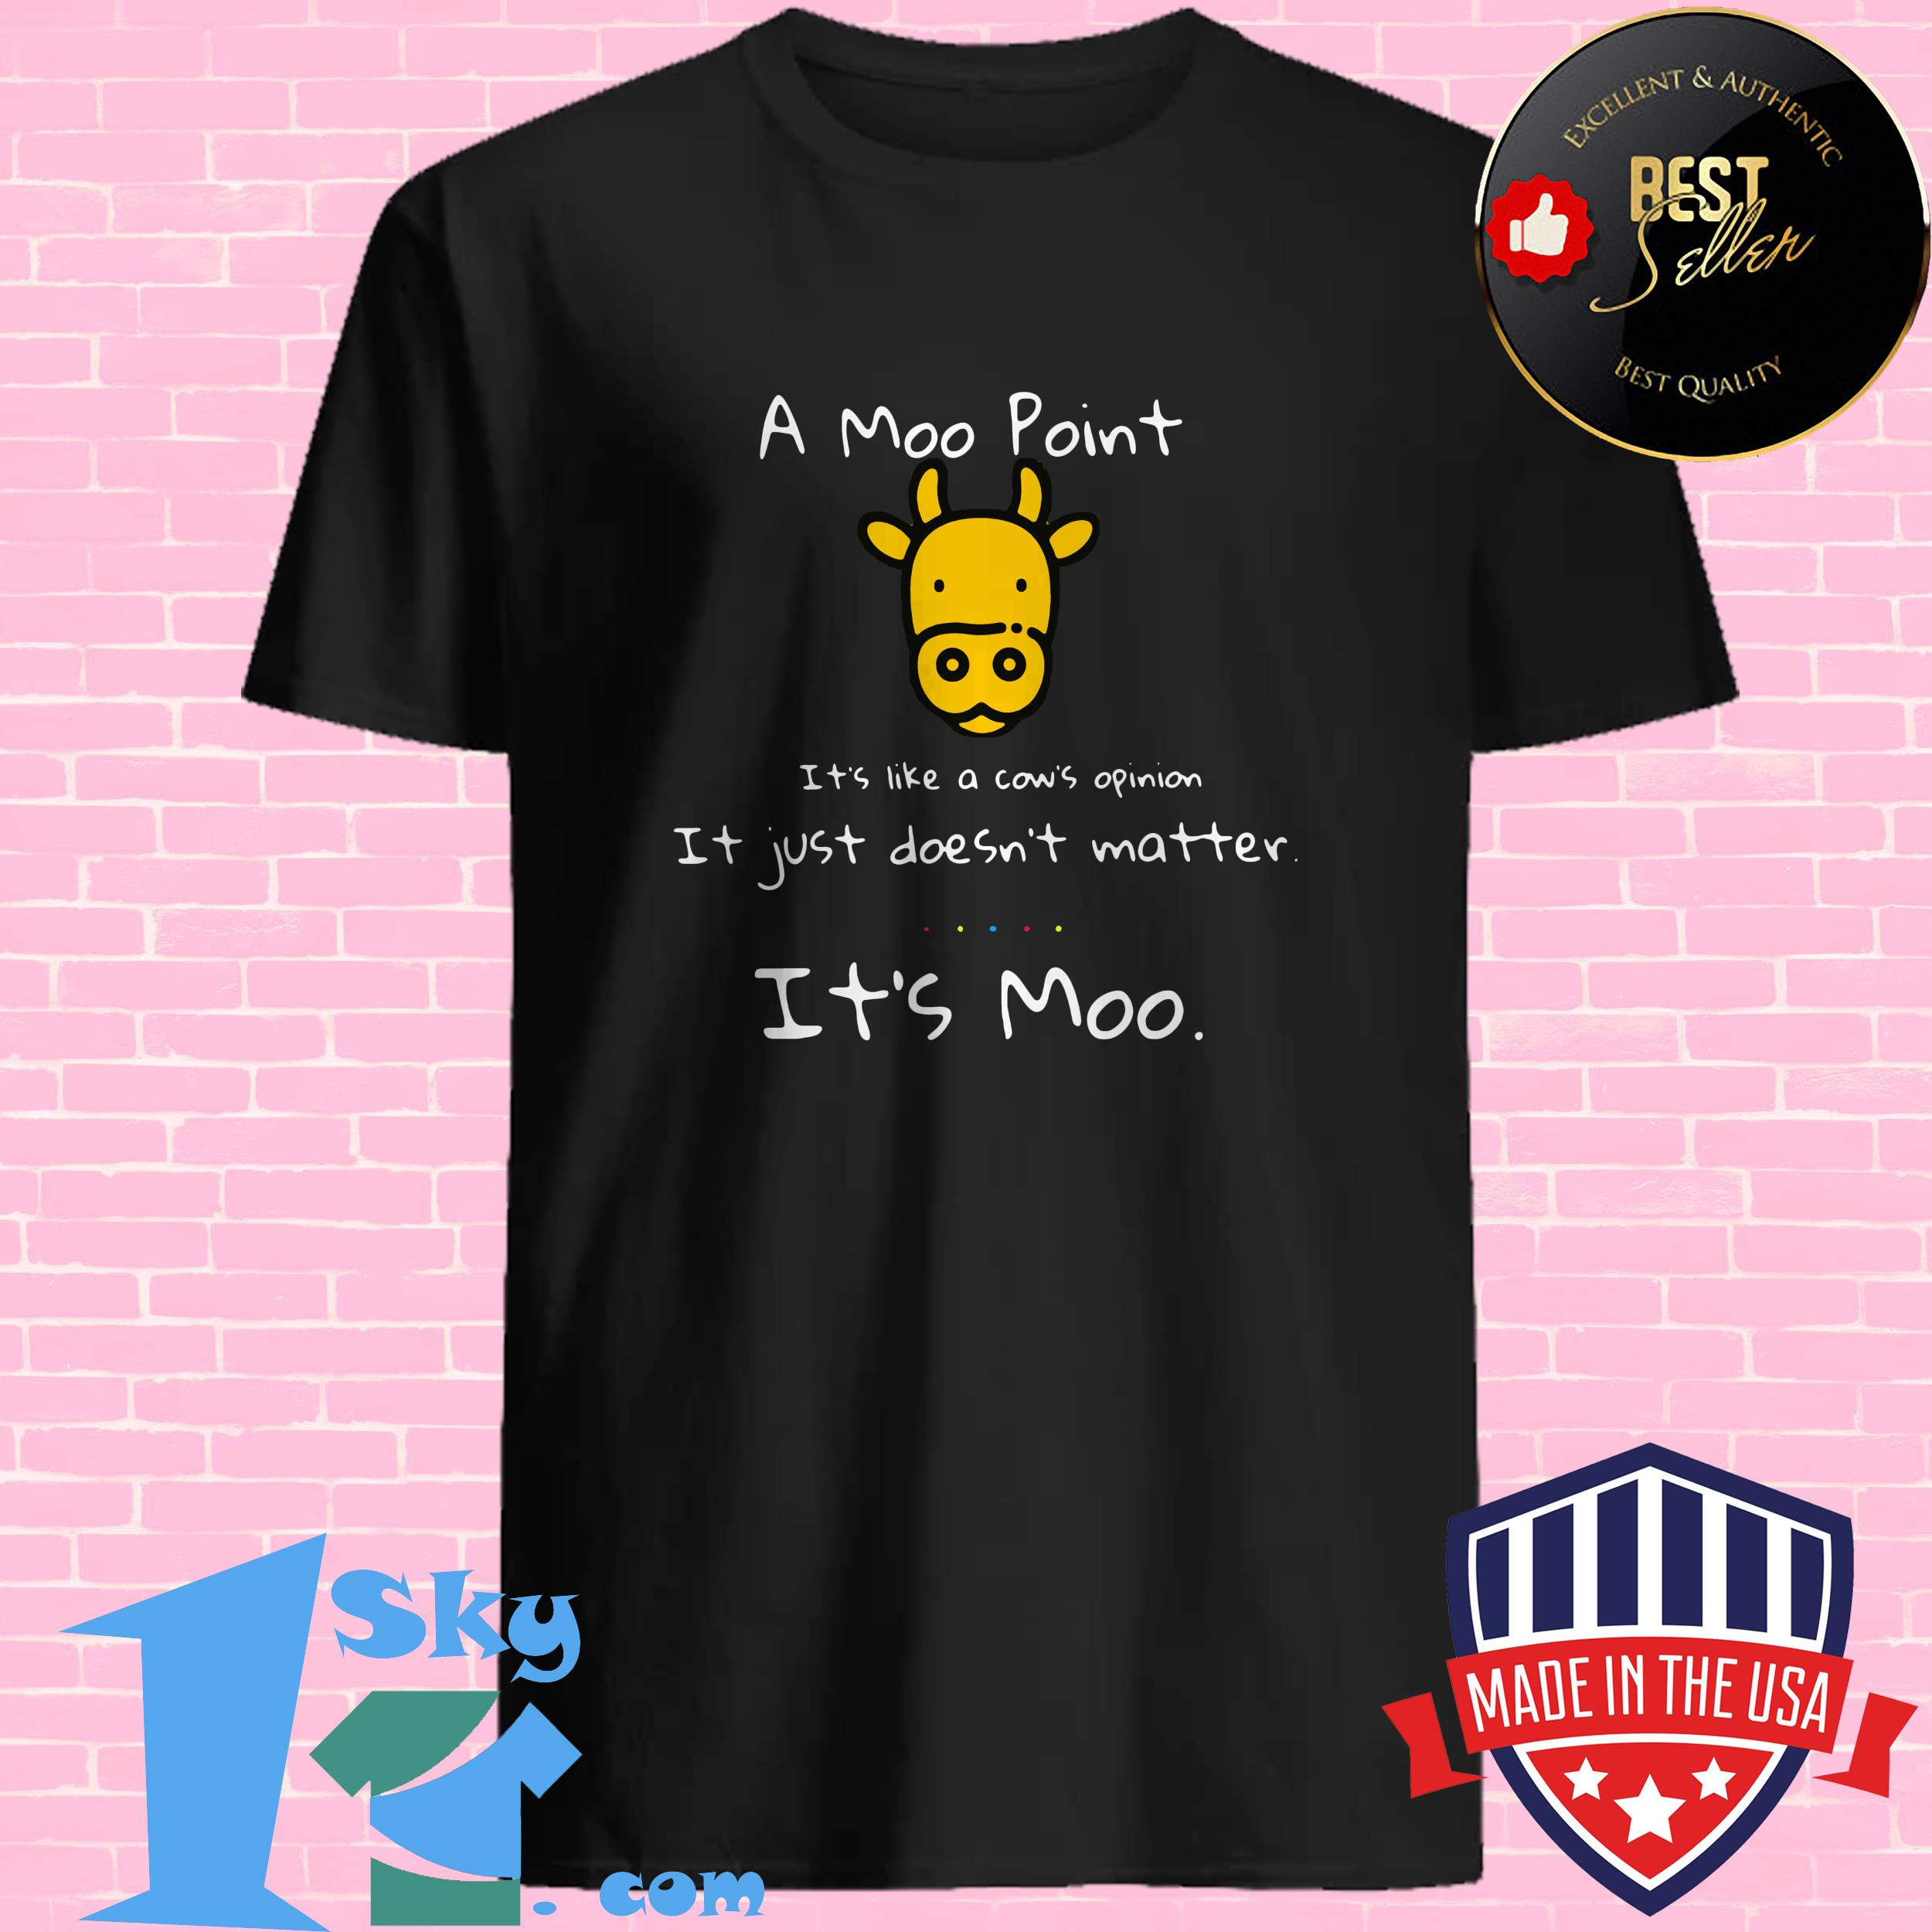 A moo point its like a cows opinion it just doesn't matter it's moo shirt